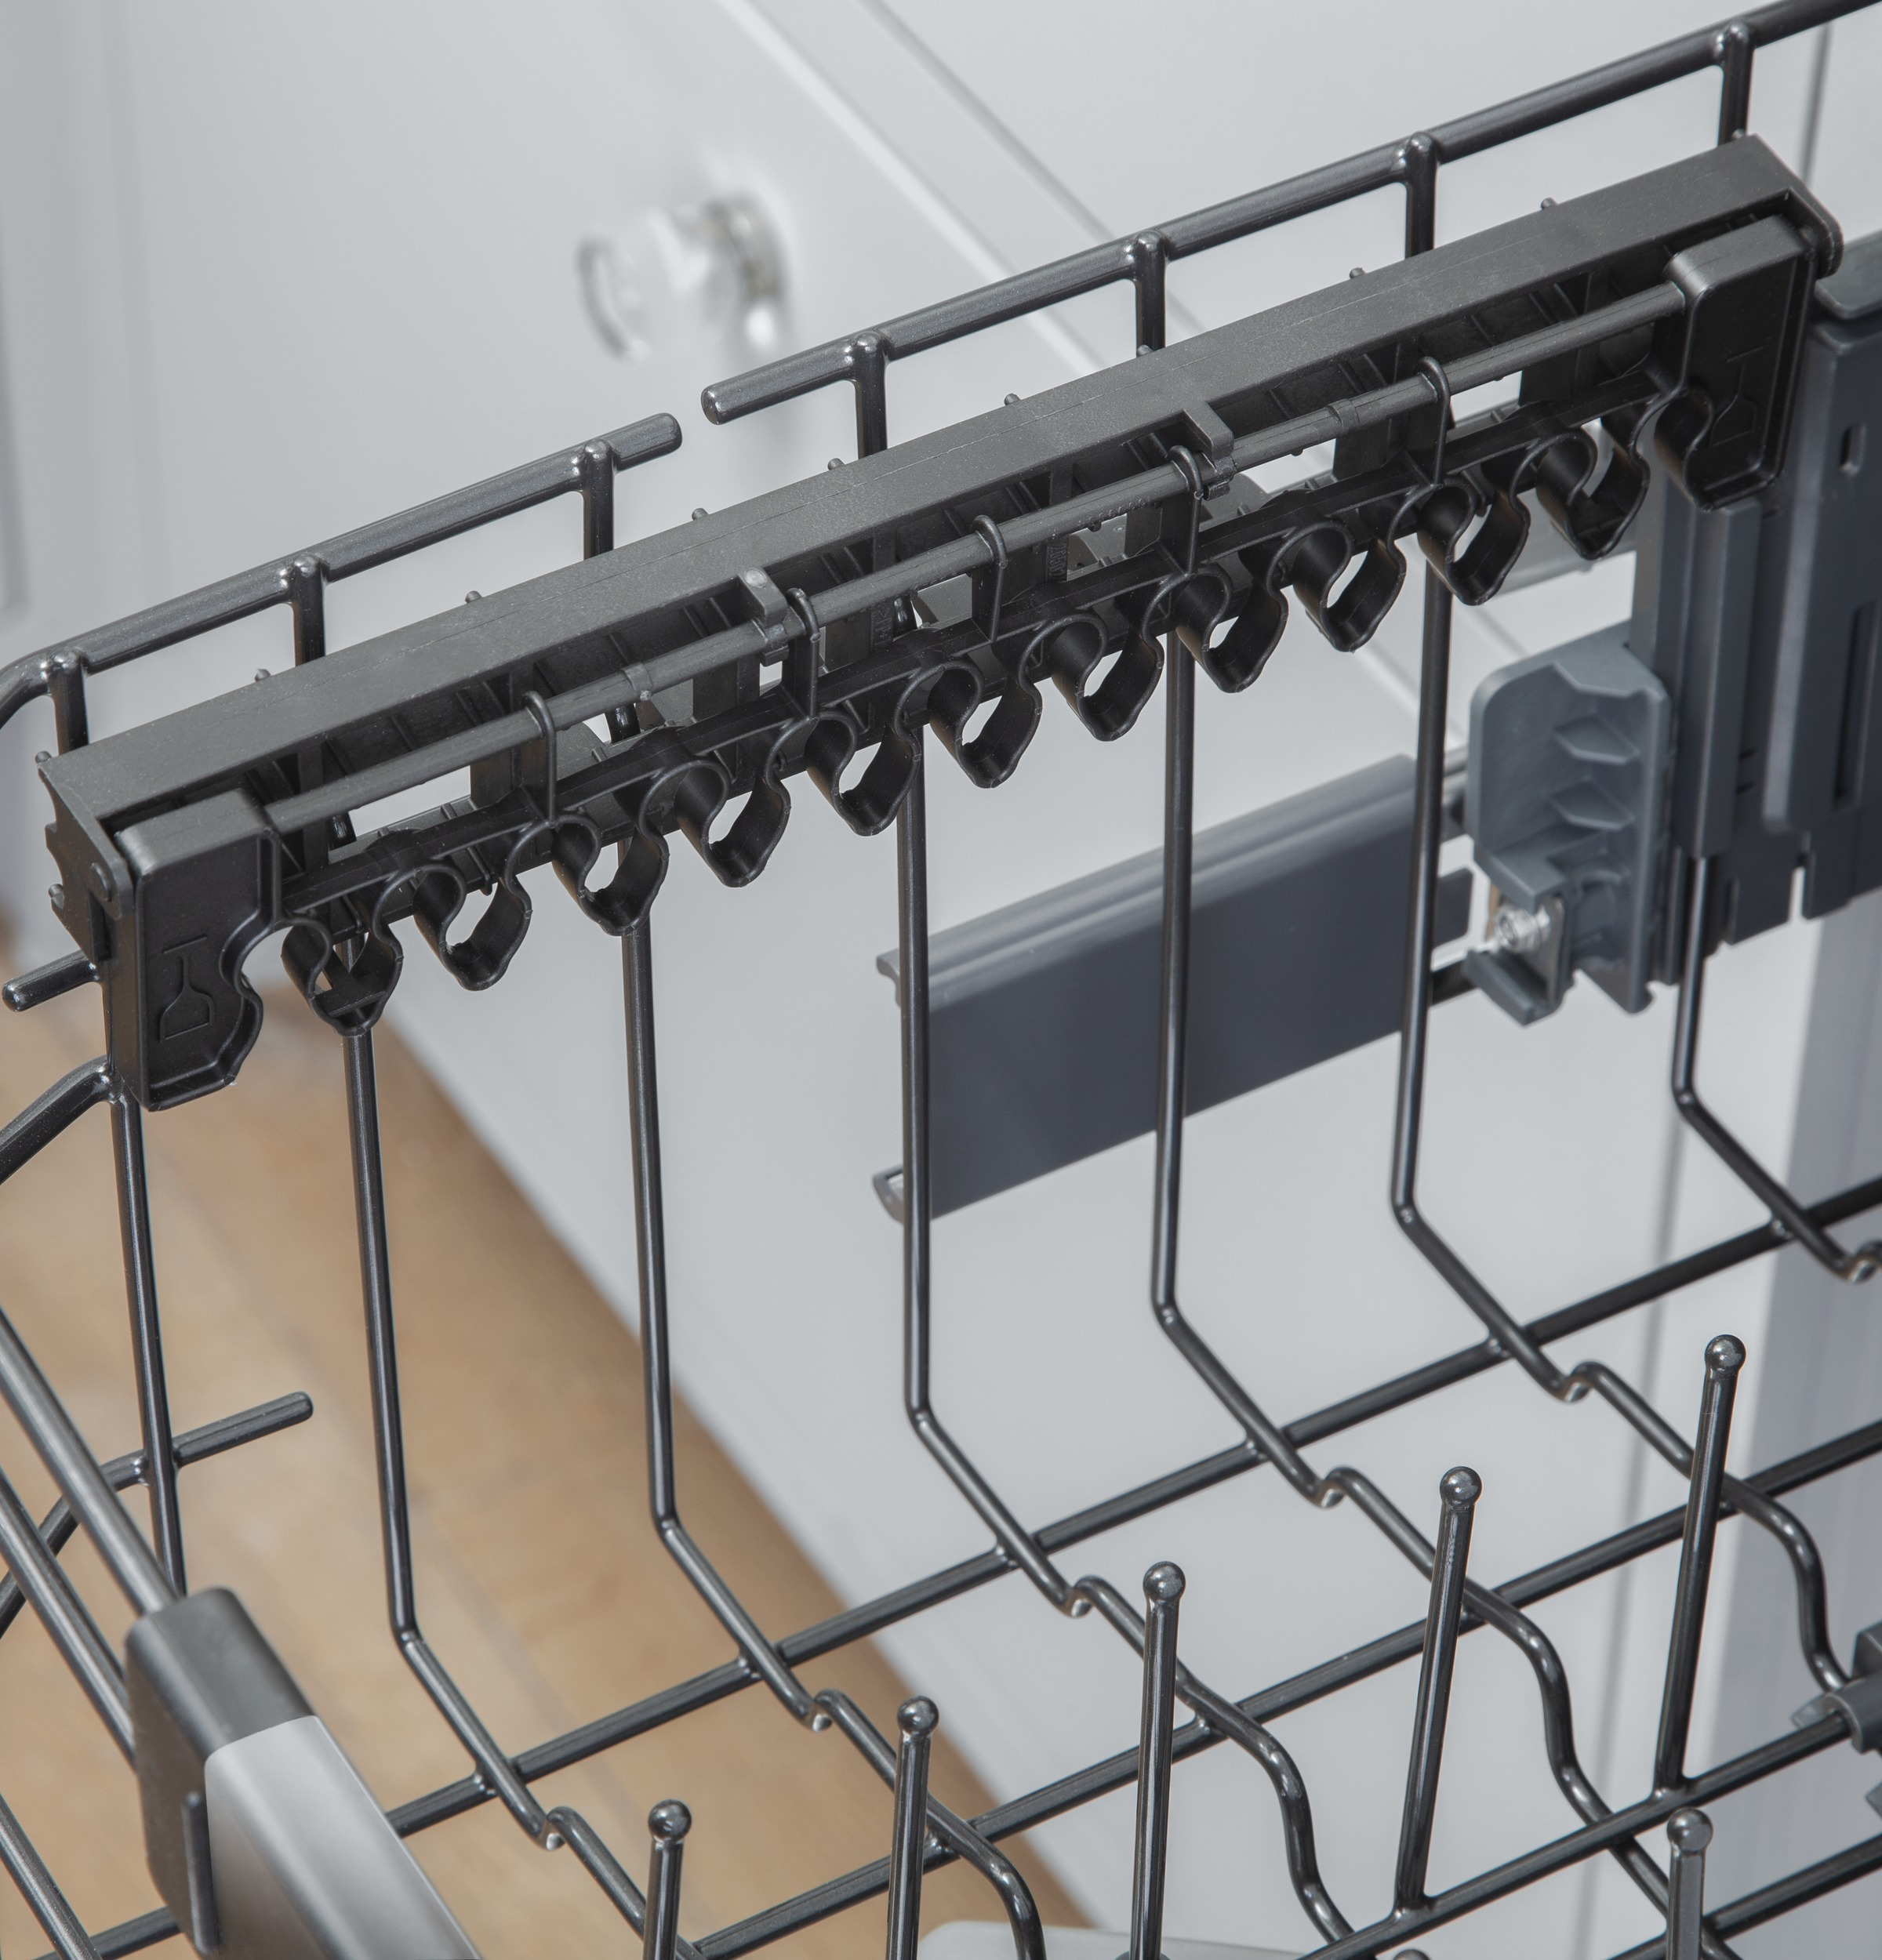 Model: CDT845M5NS5 | Cafe Café™ Stainless Steel Interior Dishwasher with Sanitize and Ultra Wash & Dry in Platinum Glass